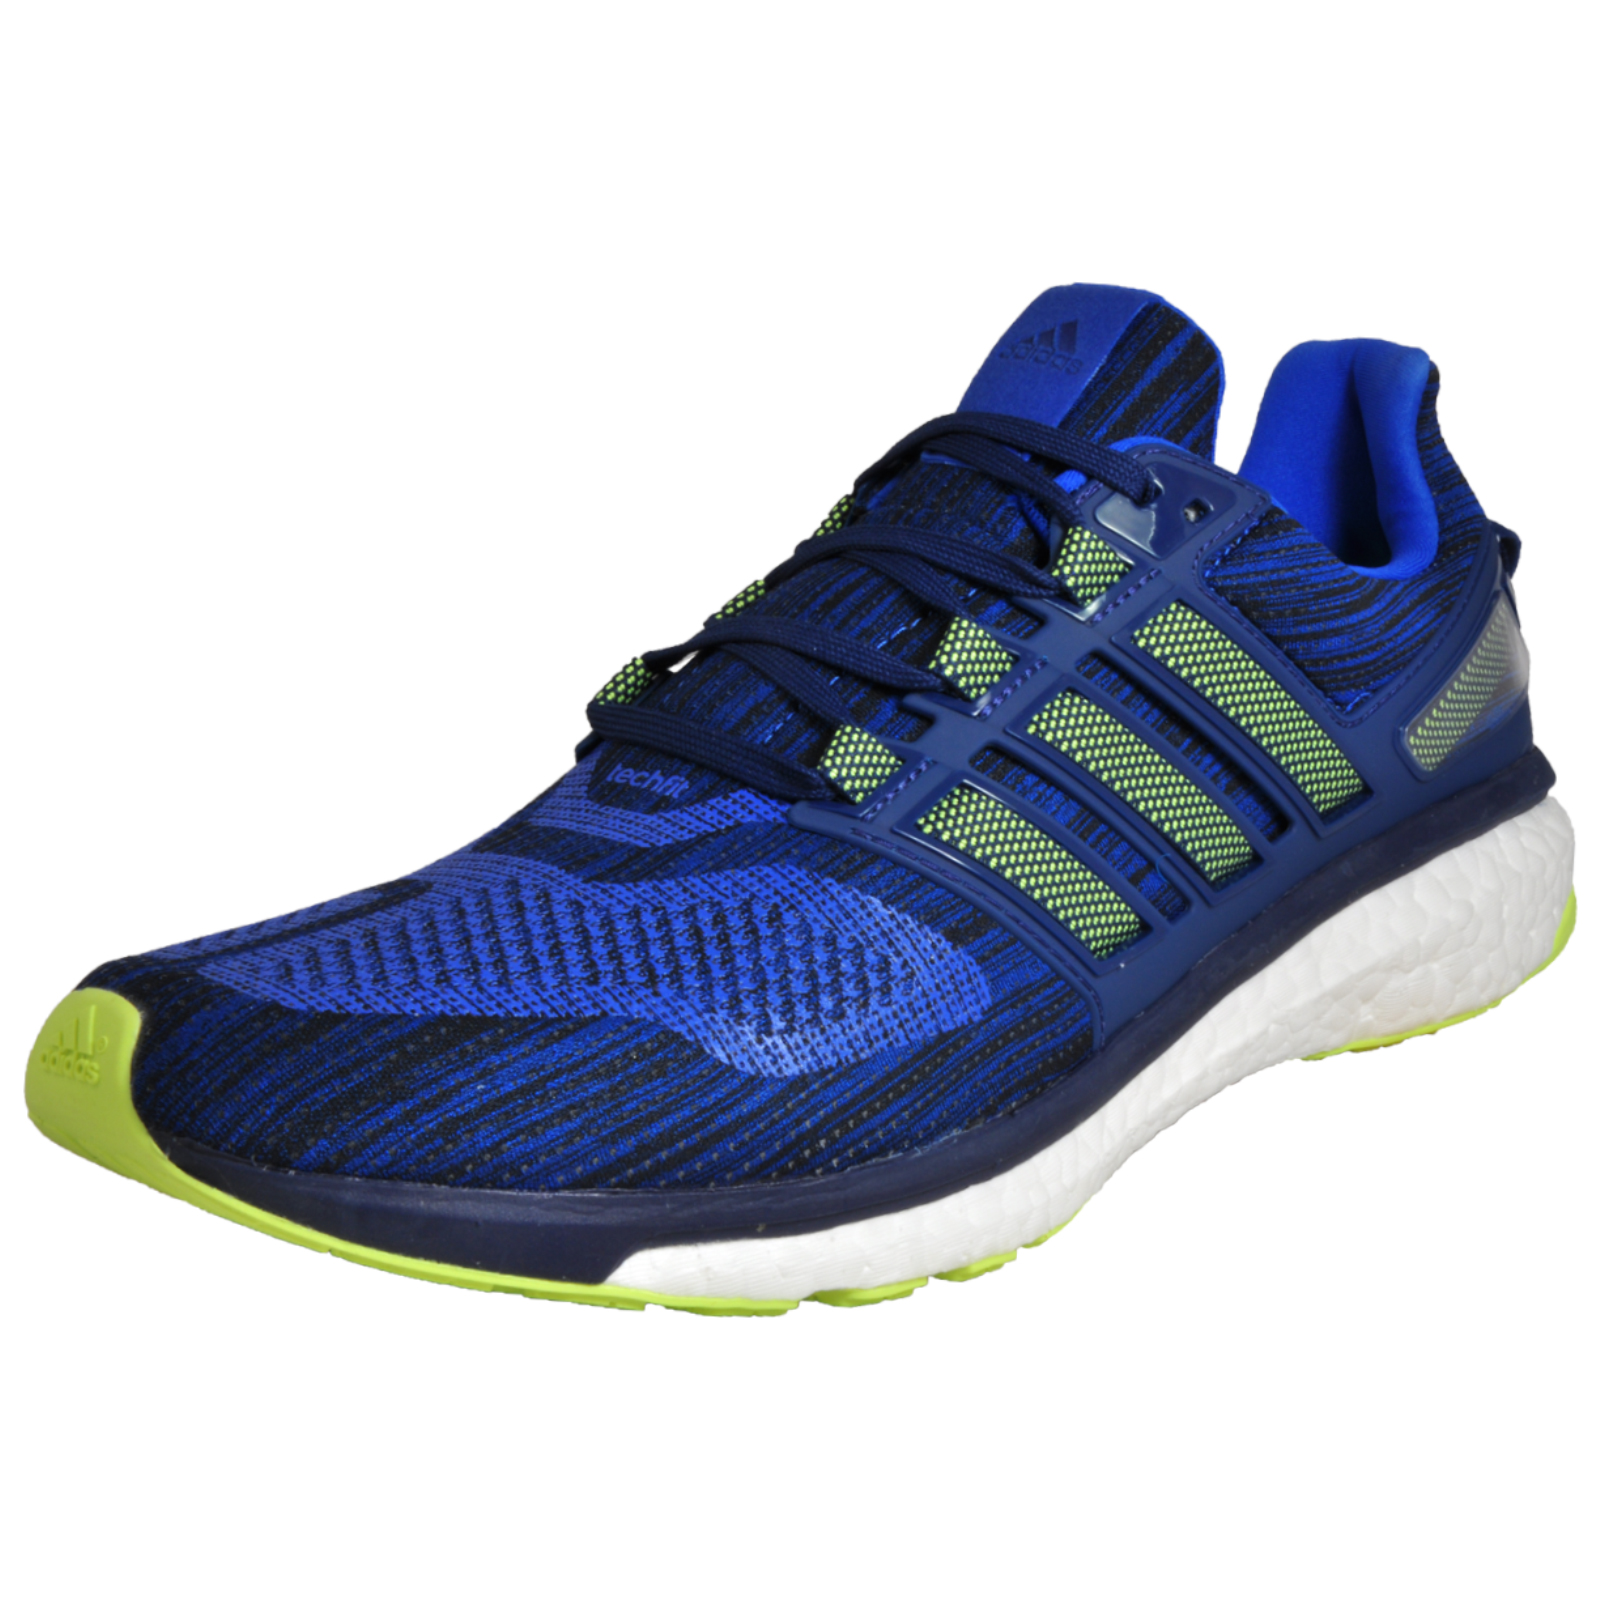 6c67b16f68d2 Adidas Energy Boost 3 Mens Superior 5 Star Running Shoes Gym Trainers Blue